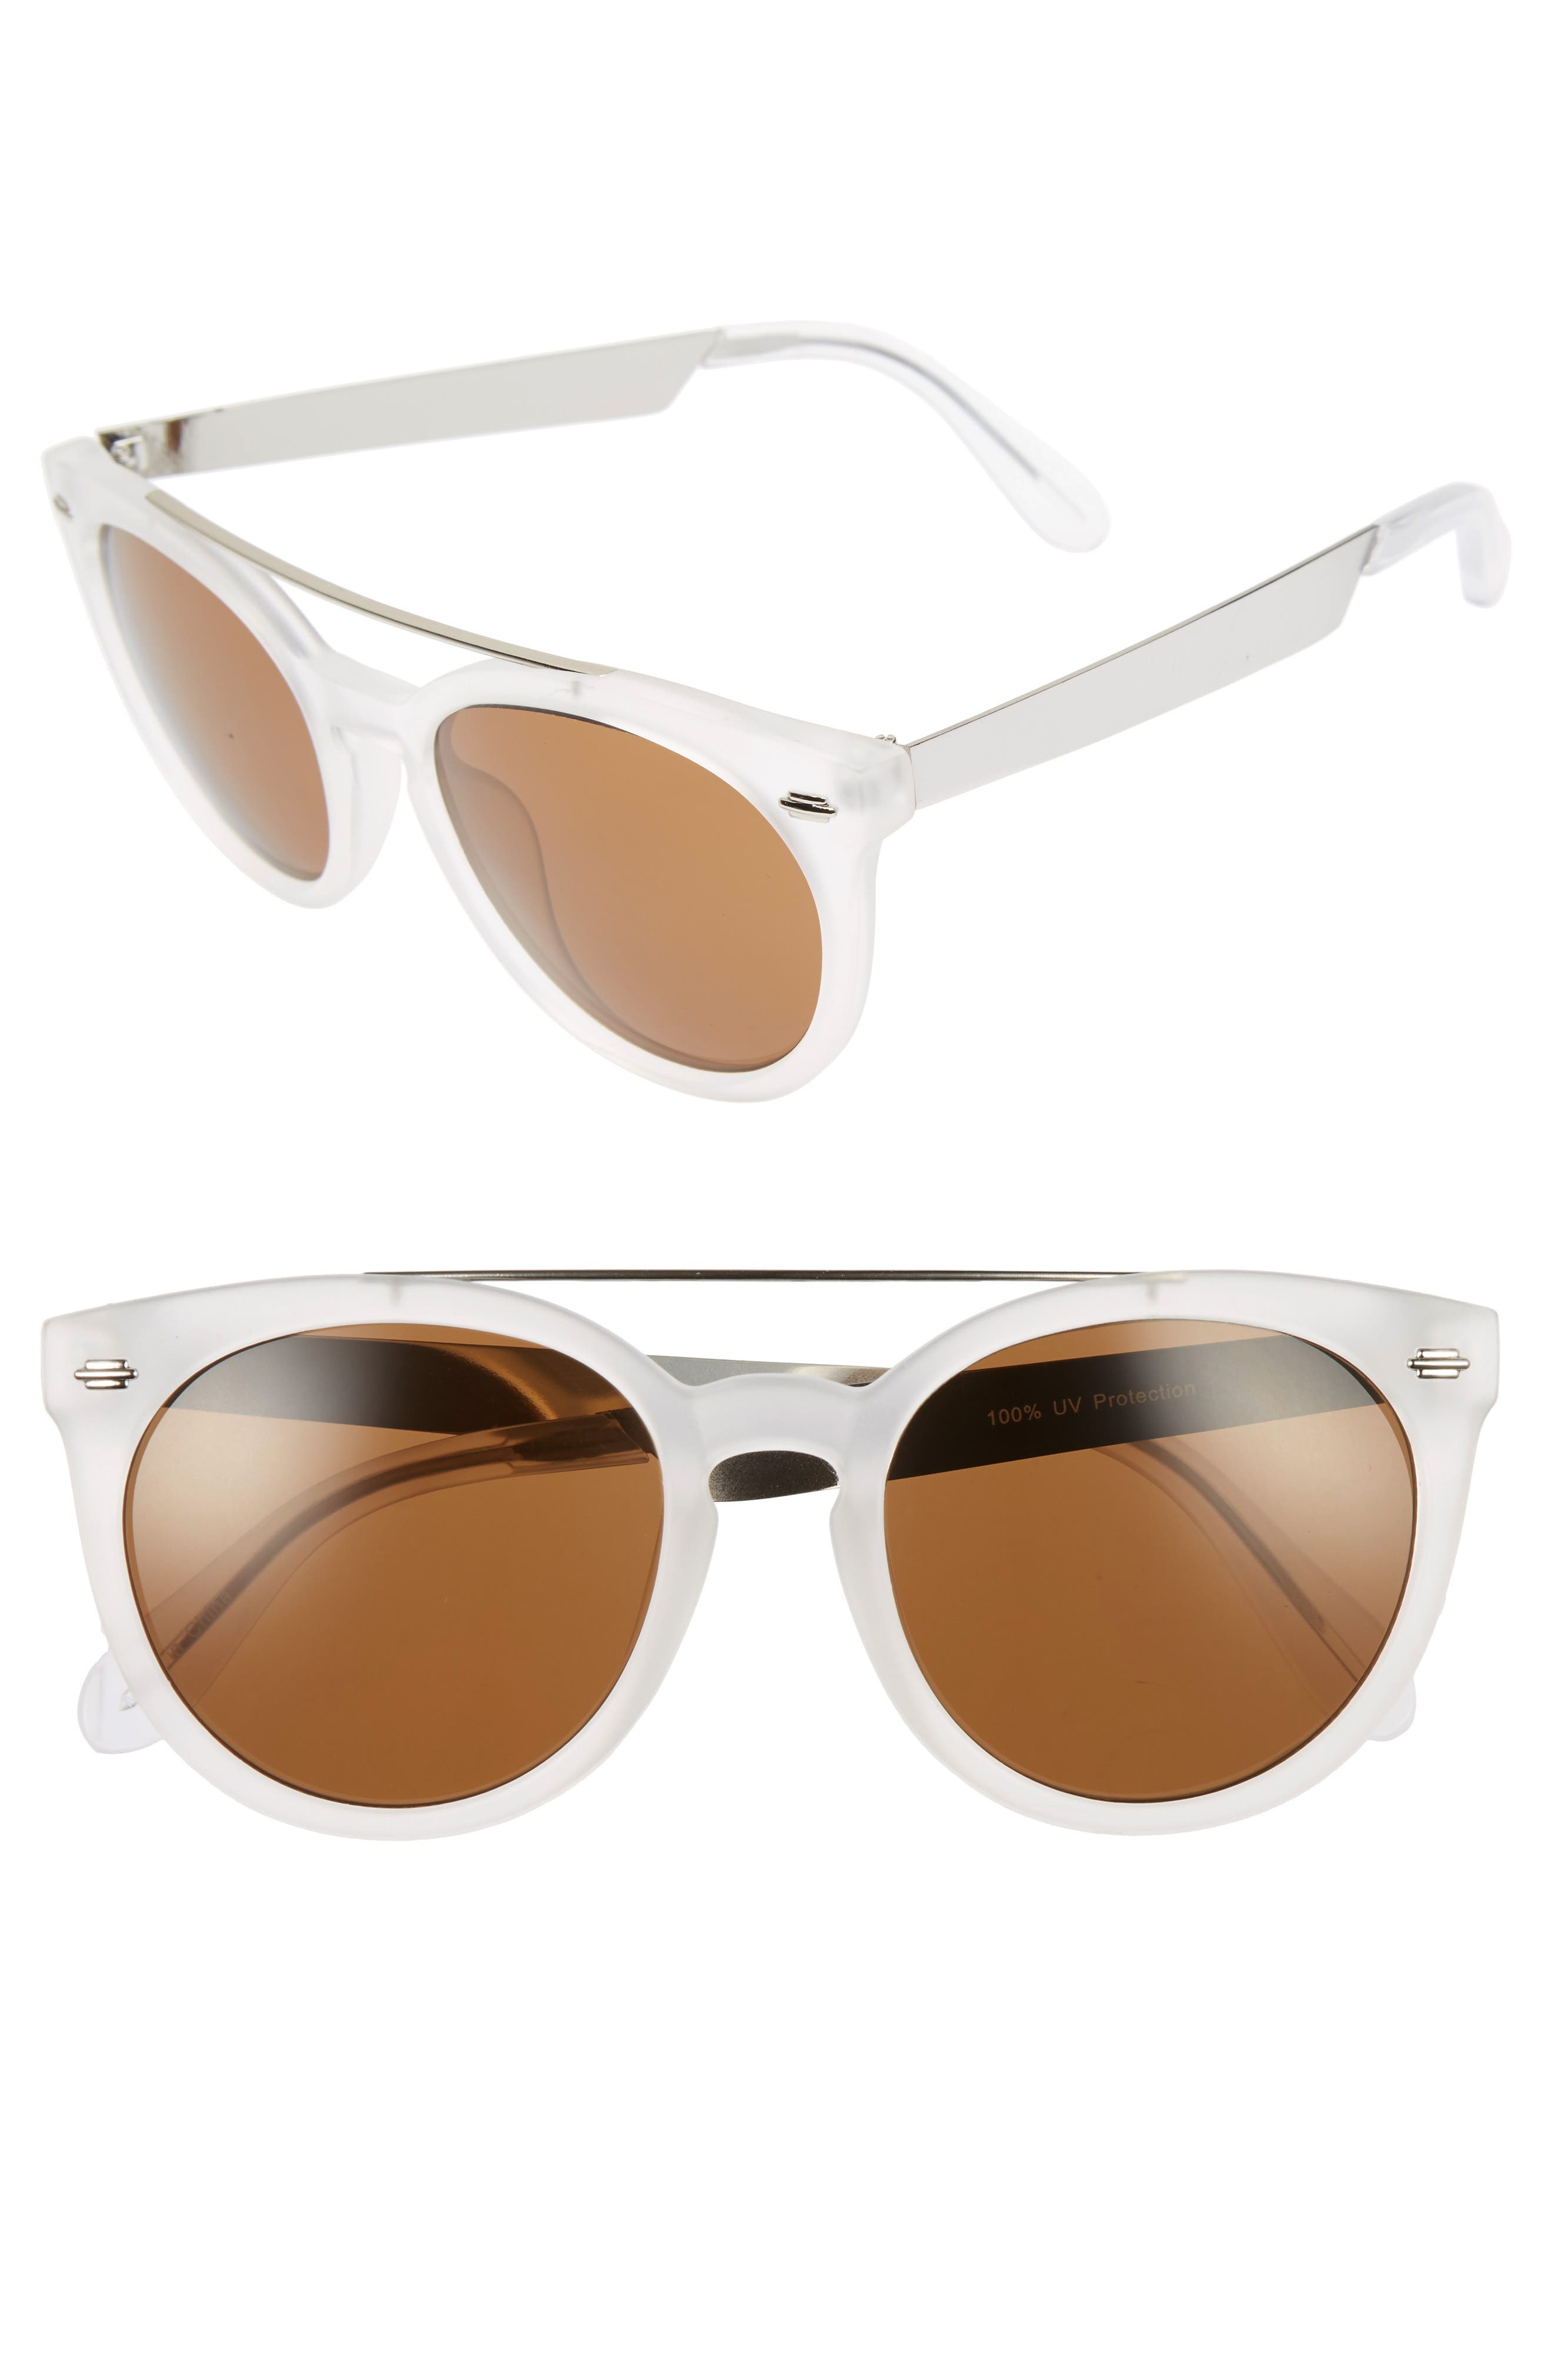 Alternate Image 1 Selected - BP. Round Sunglasses